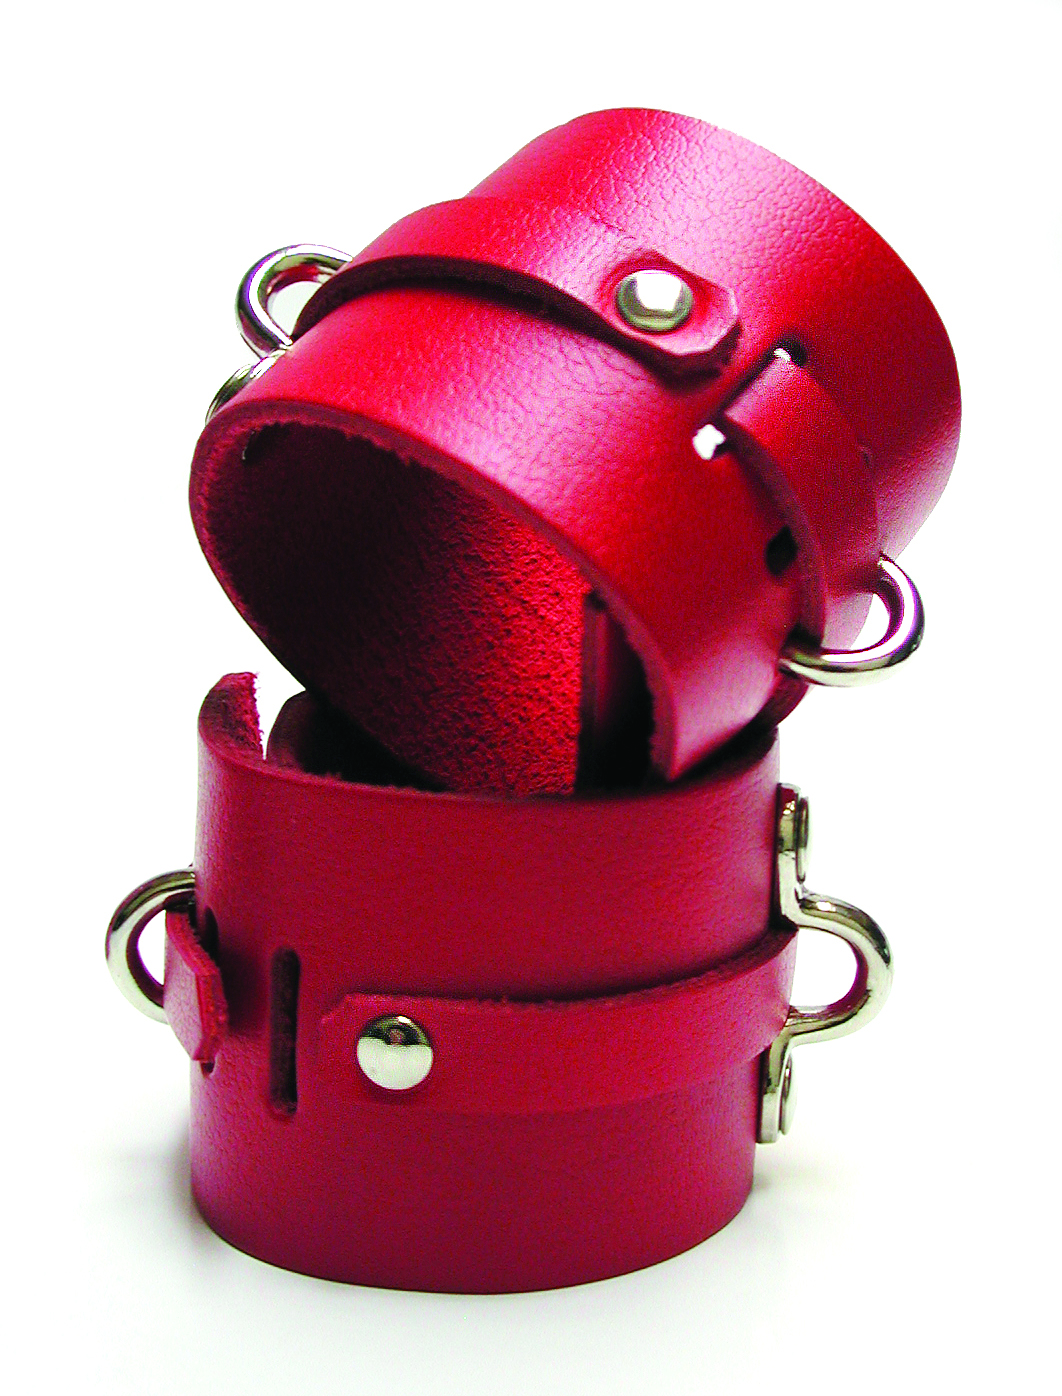 ANKLE CUFFS LEATHER RED